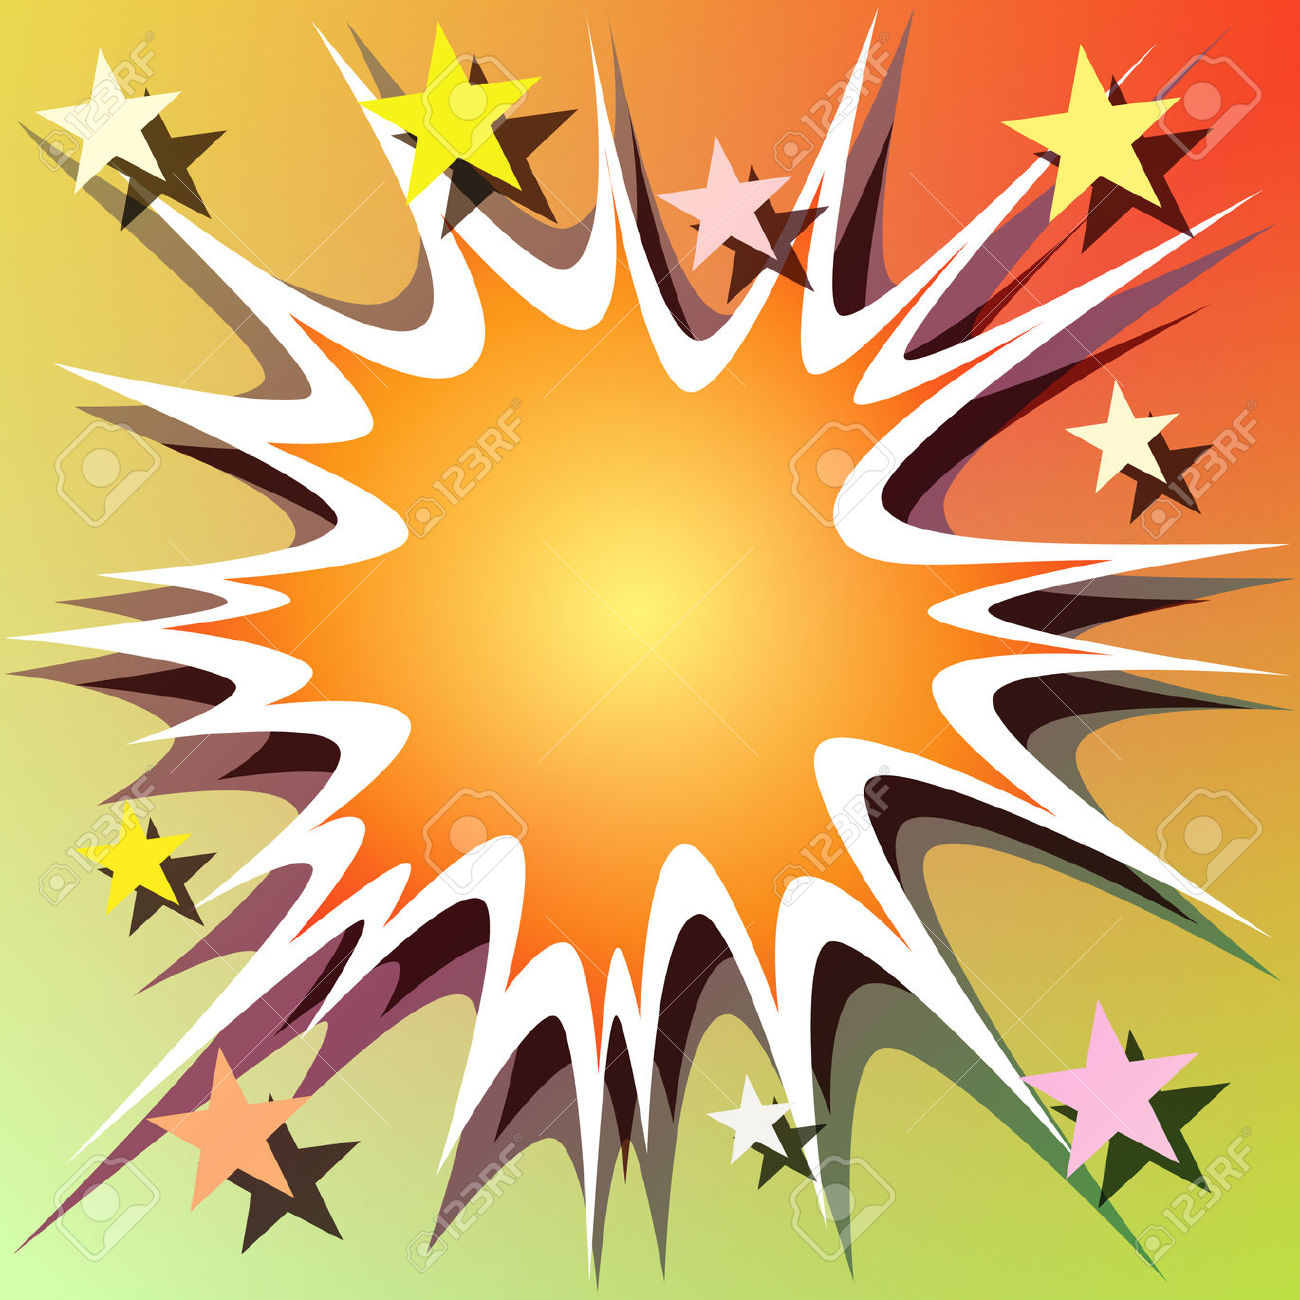 Explosions clipart star explosion Vector Book And Comic Comic